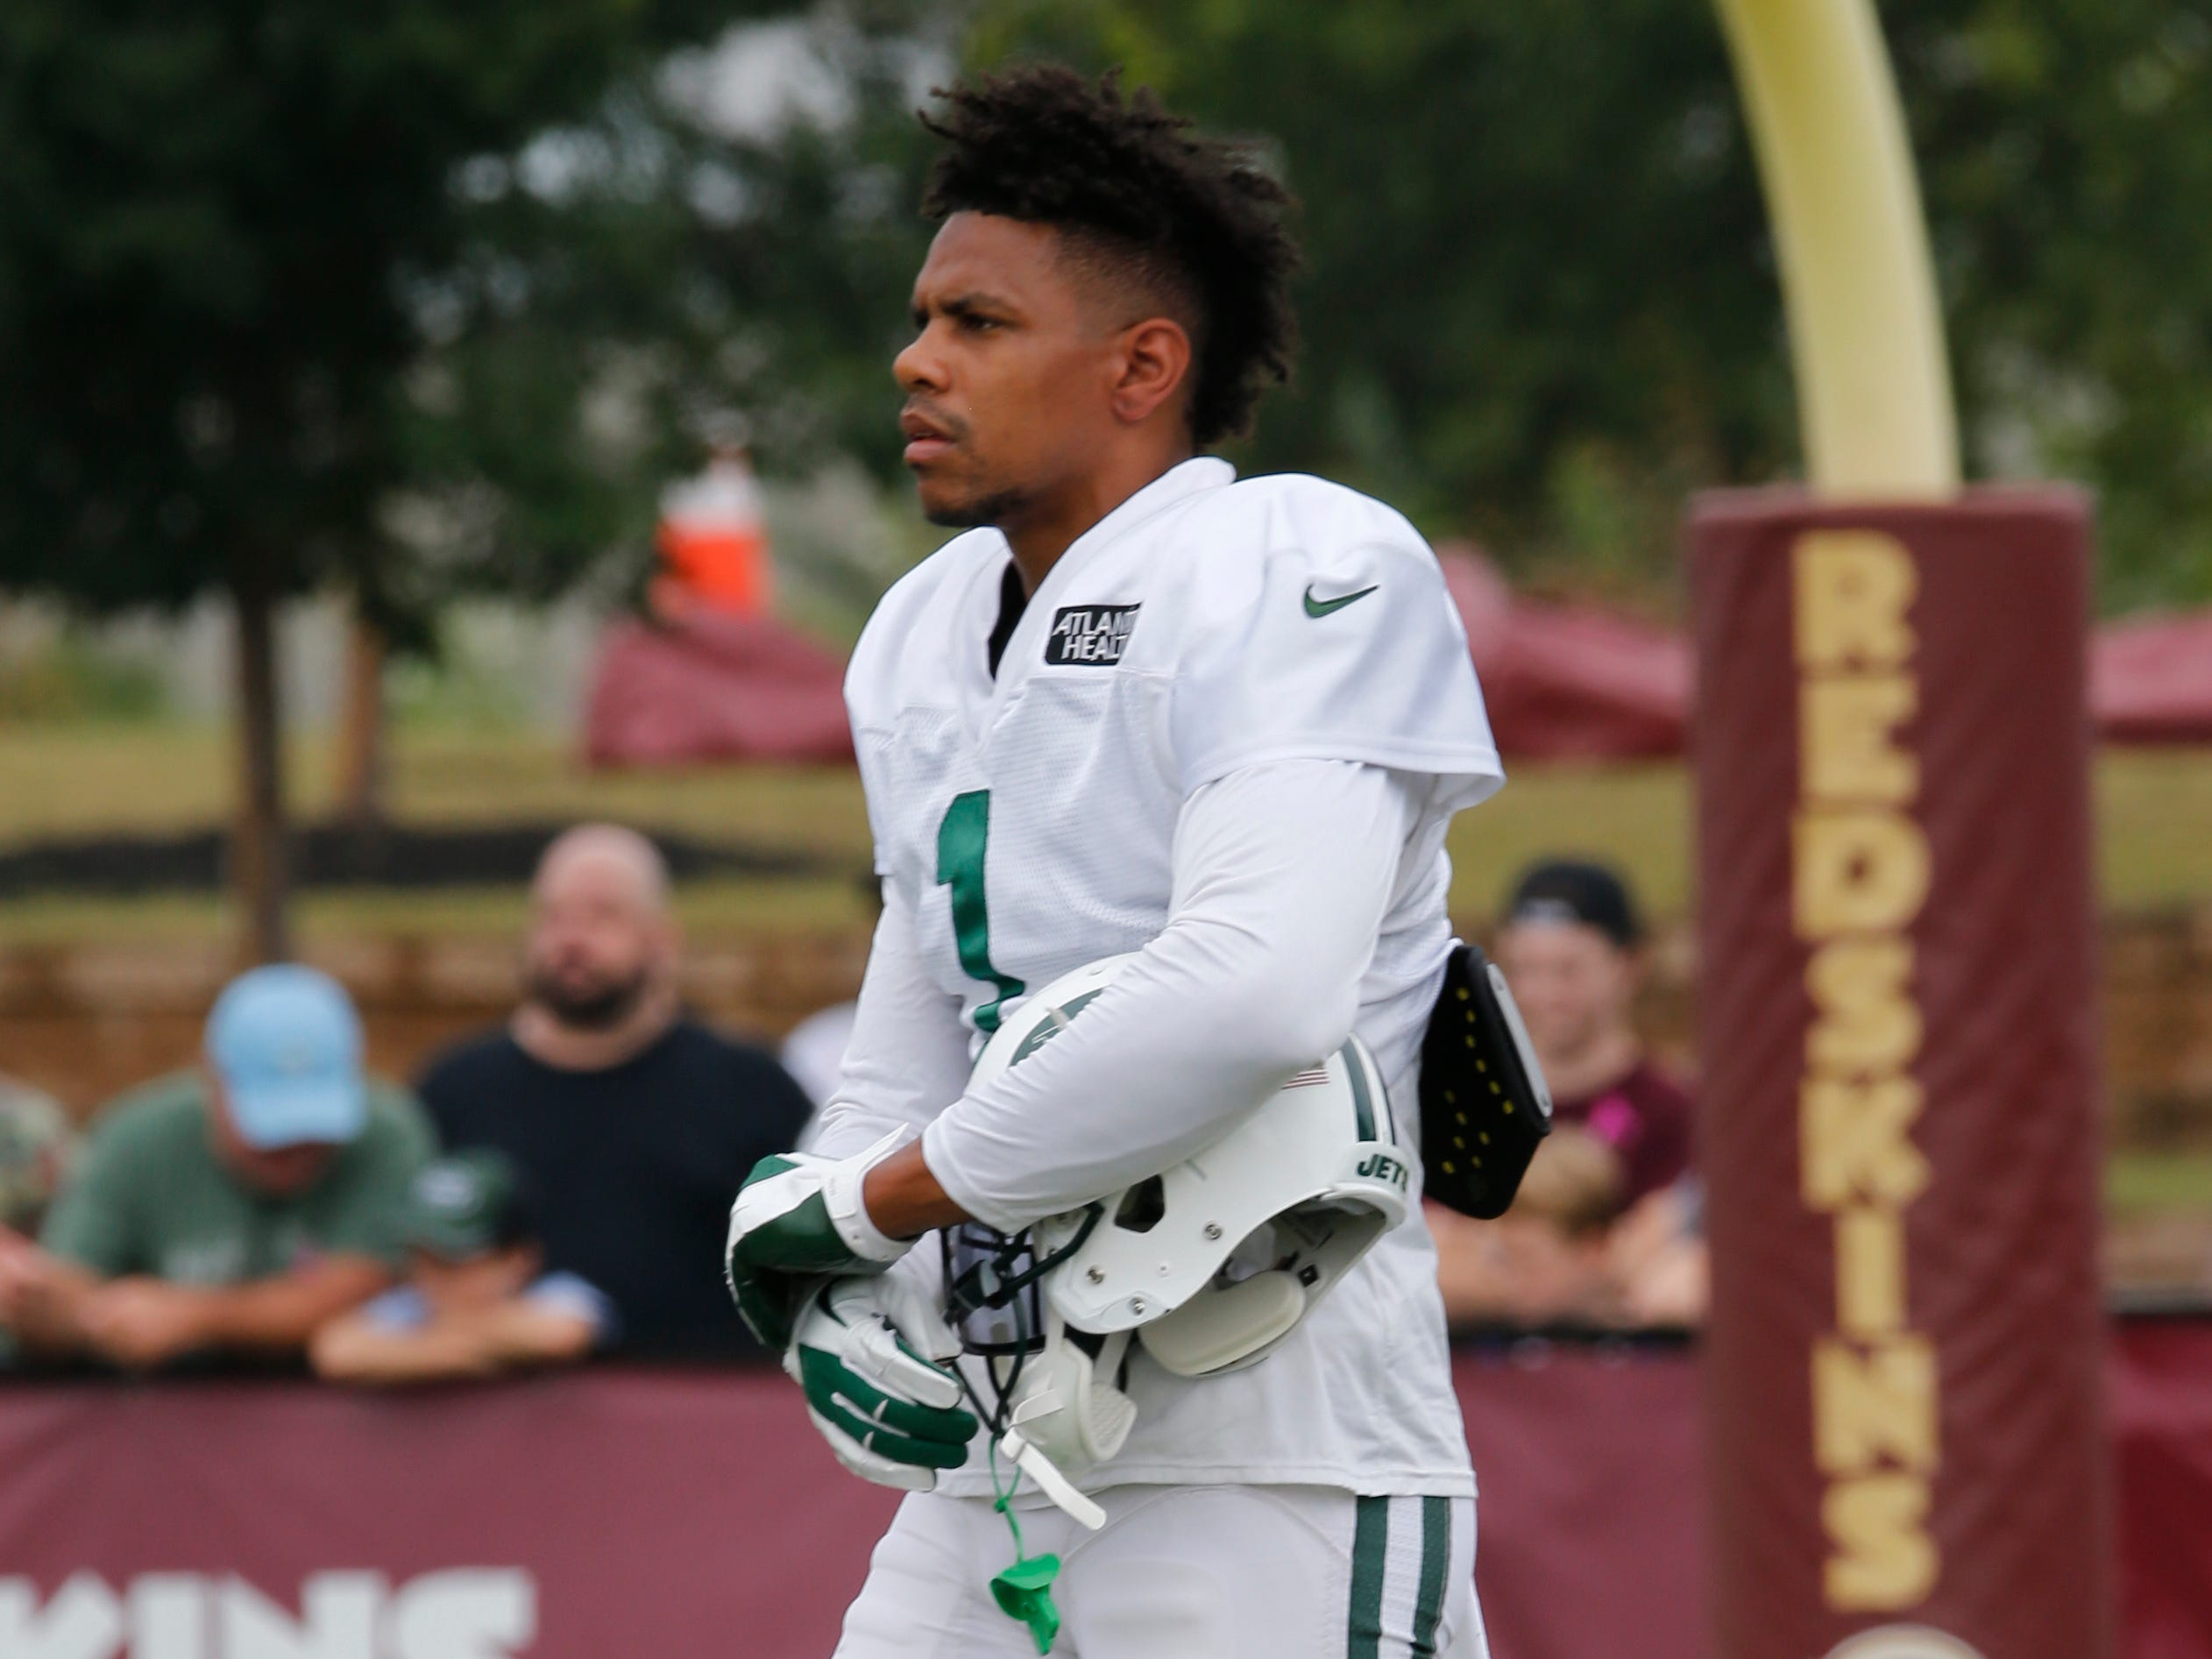 New York Jets wide receiver Terrelle Pryor (1) watches drills during the New York Jets Washington Redskins NFL football training camp in Richmond, Va., Monday, Aug. 13, 2018.